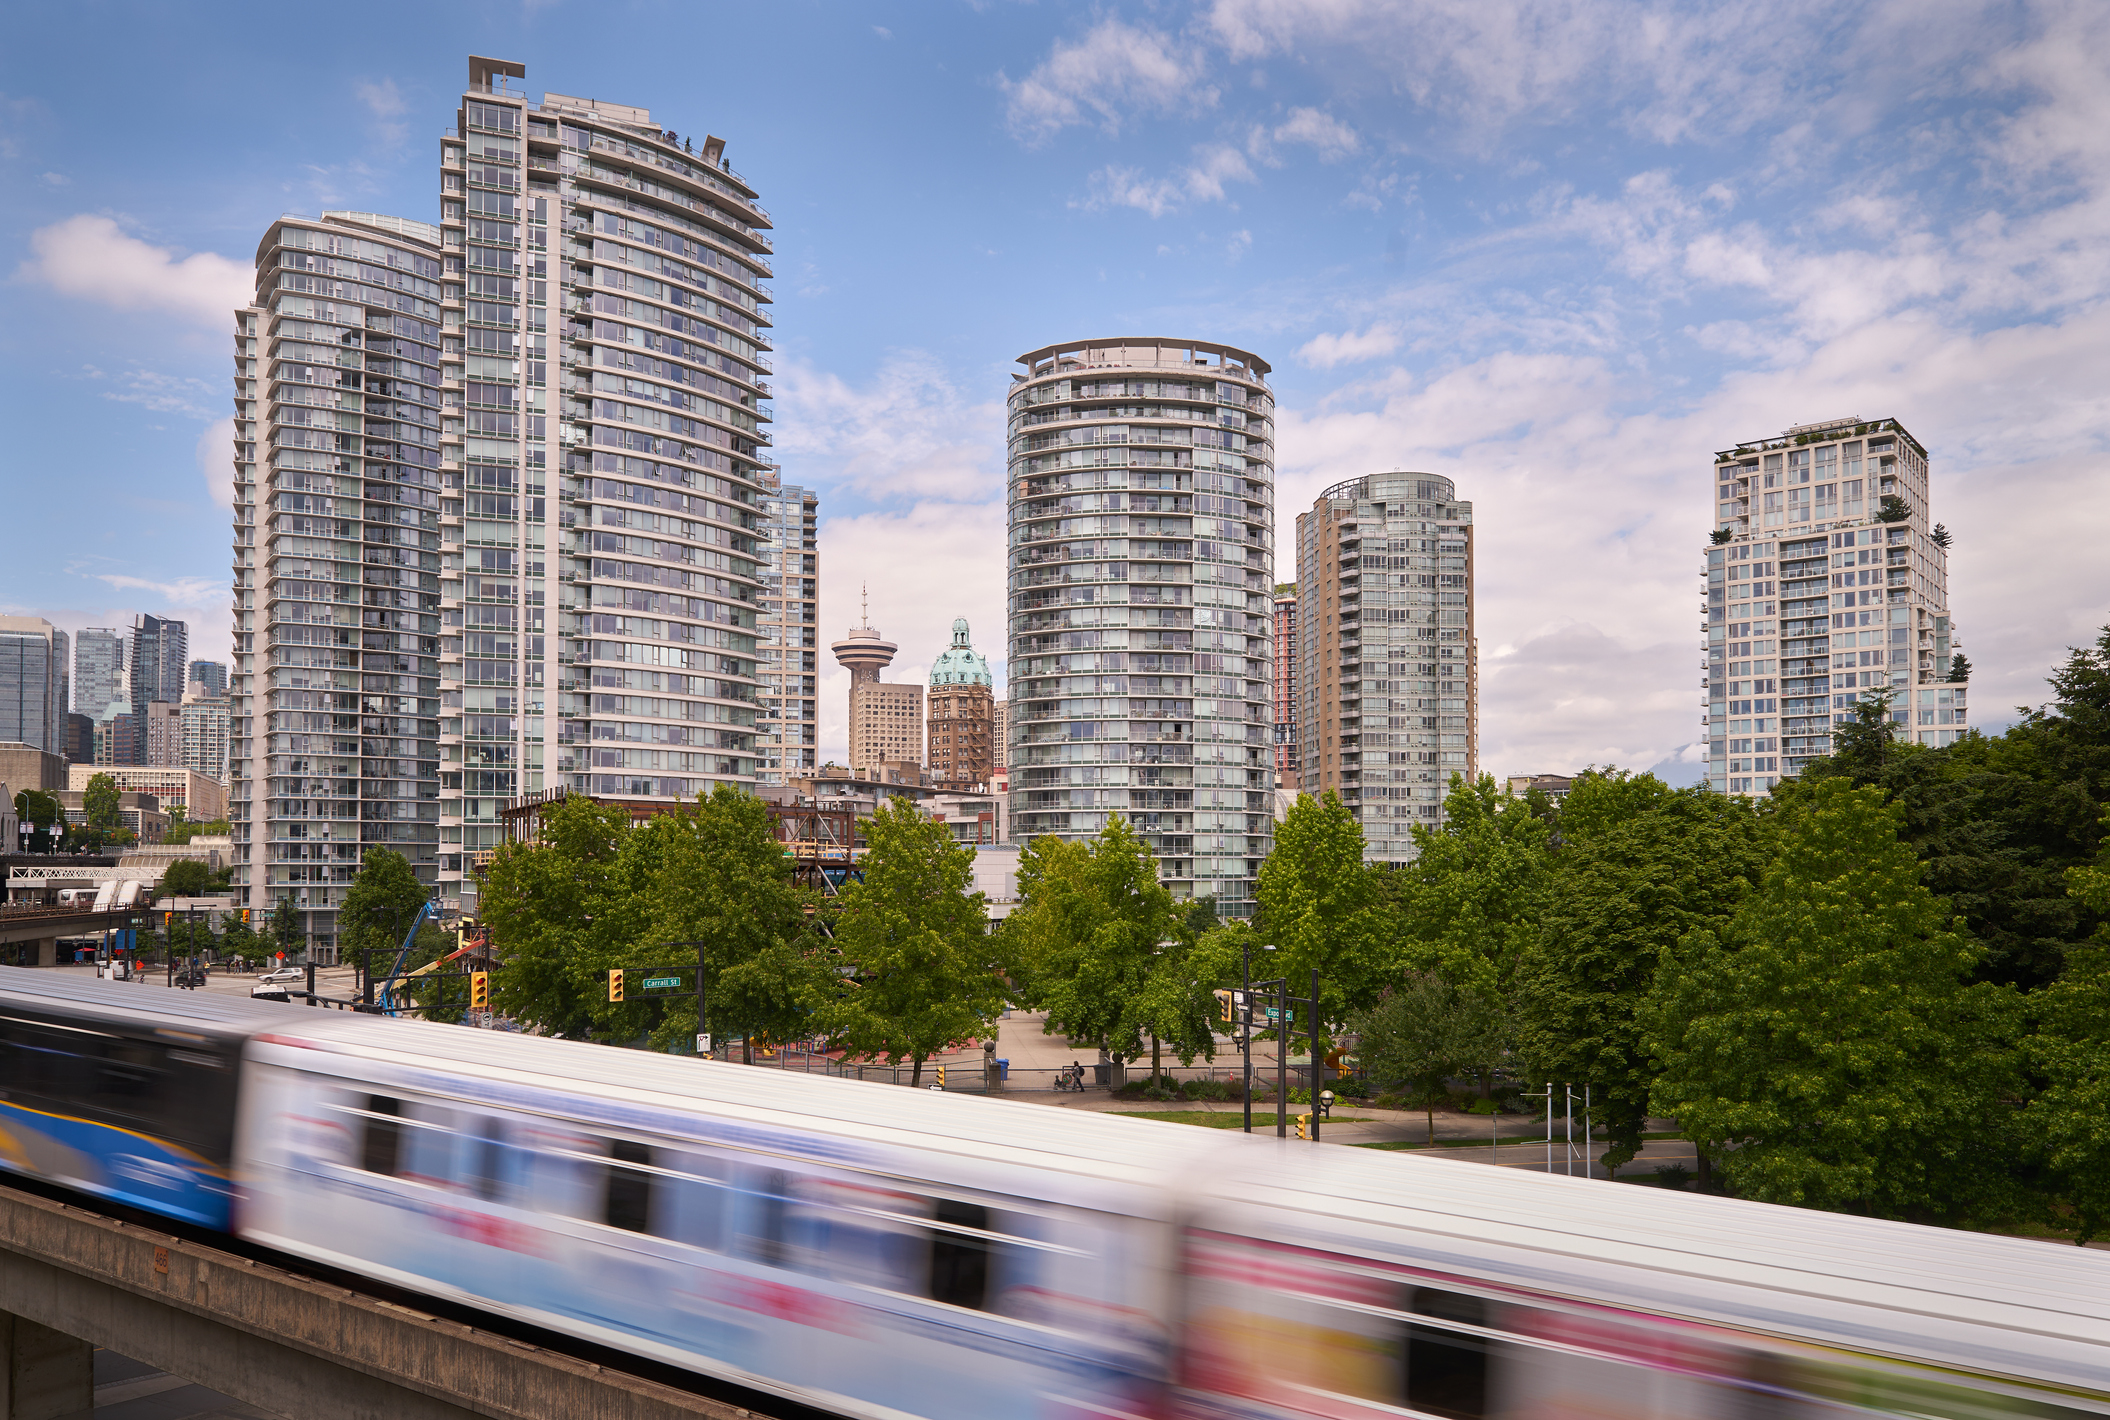 skytrain entering downtown Vancouver